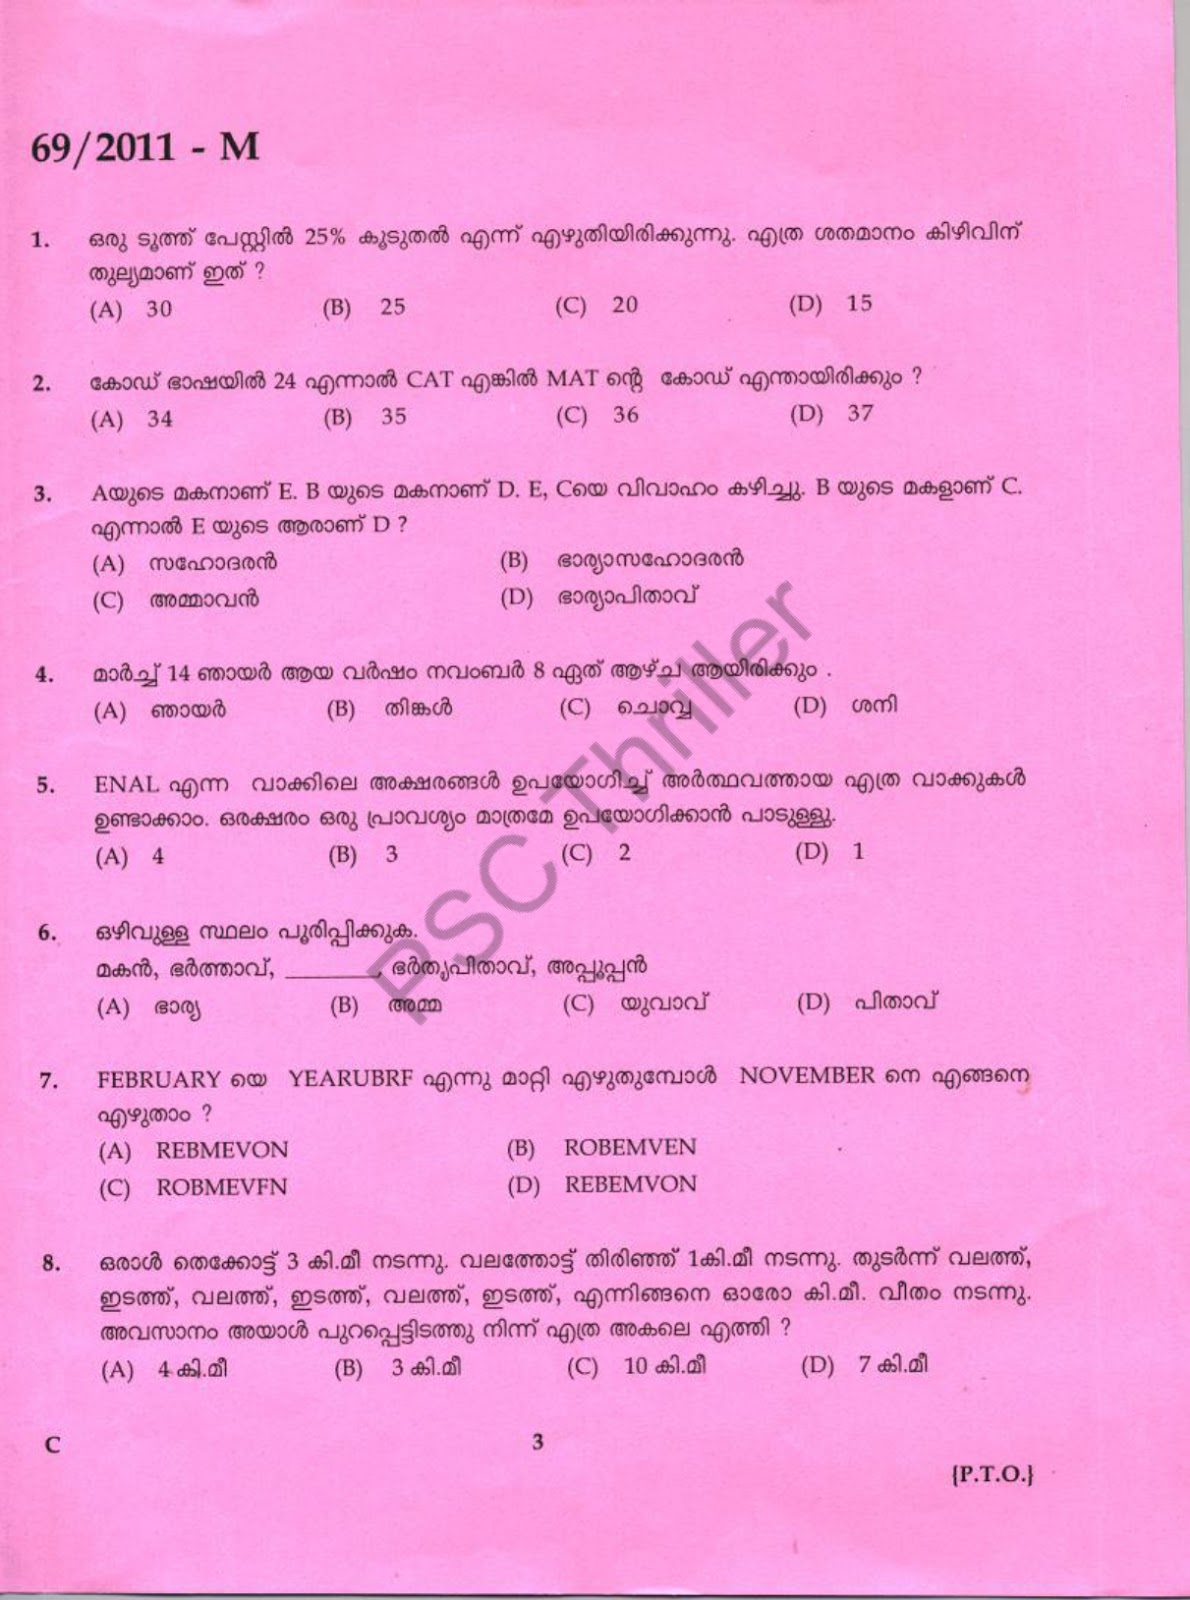 LDC Question paper with Answer Key (69/2011)